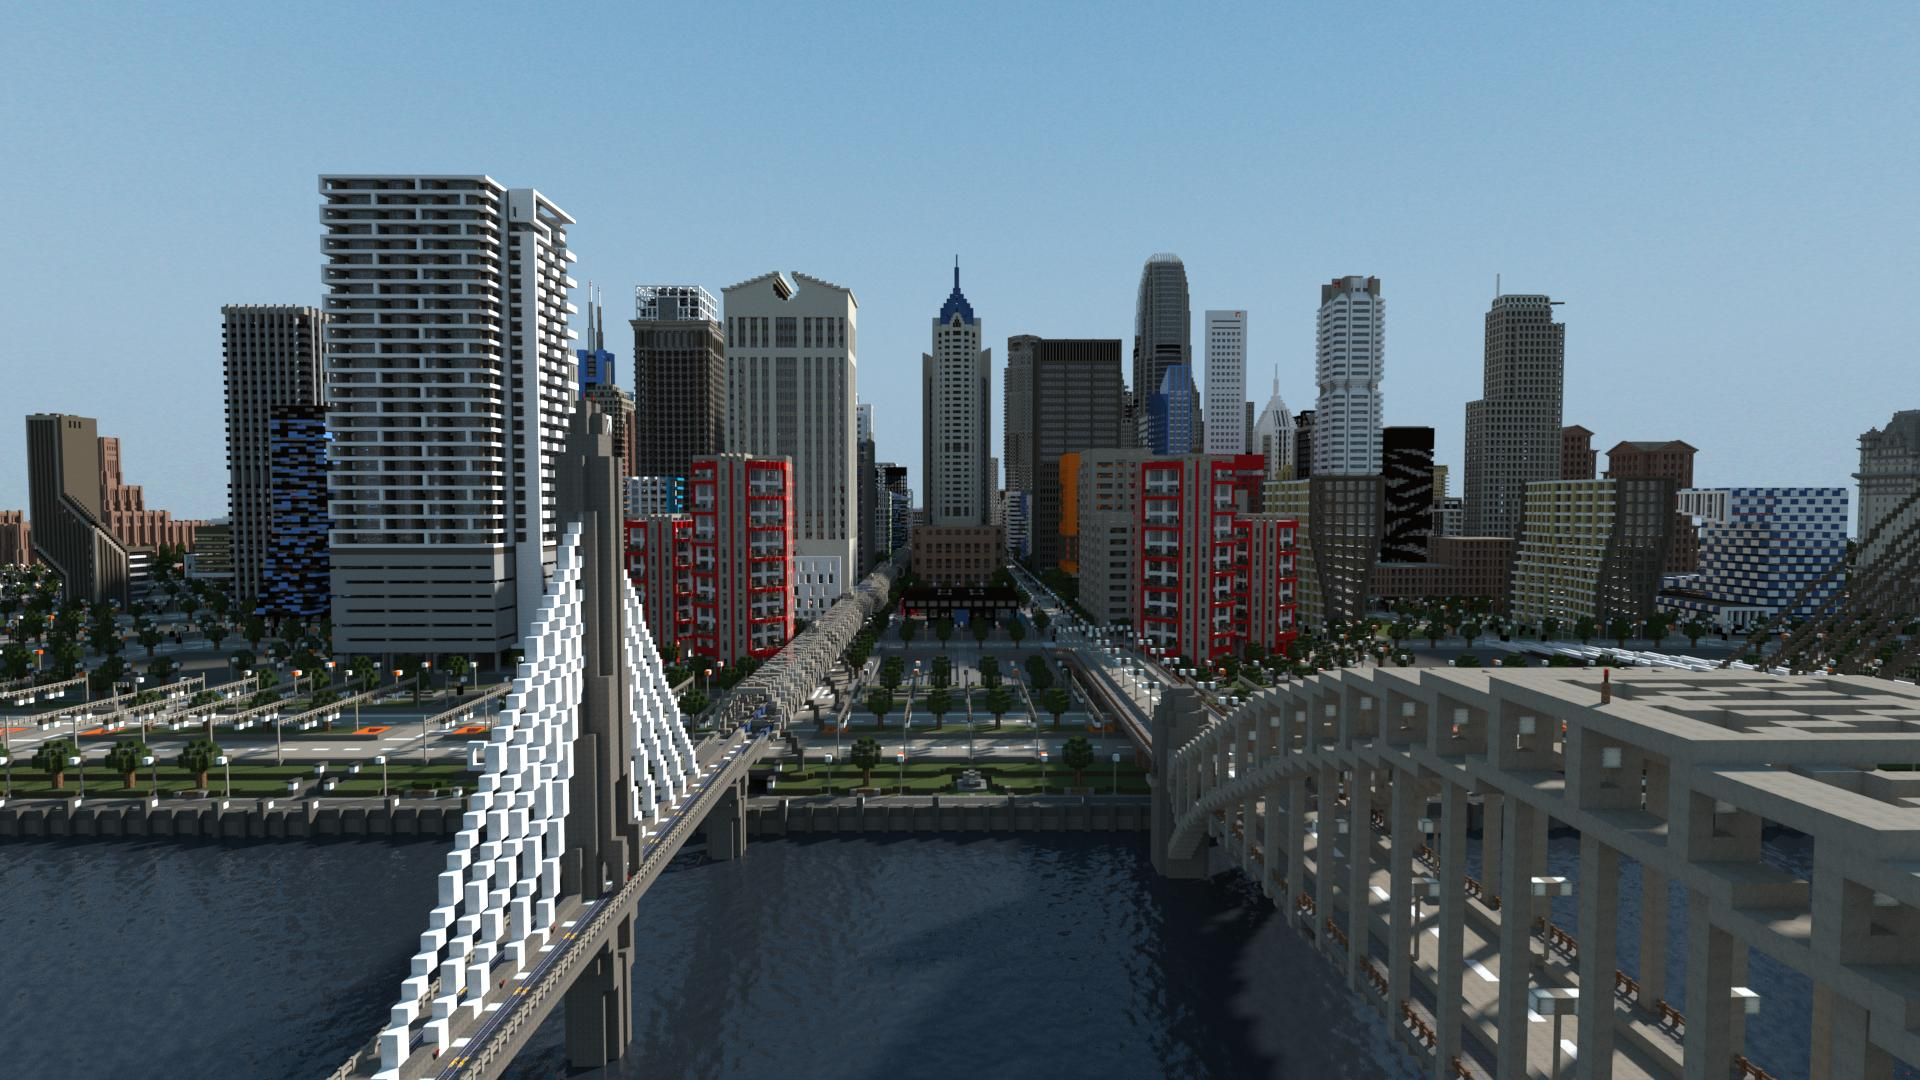 Files - Modern City Modpack - Modpacks - Projects